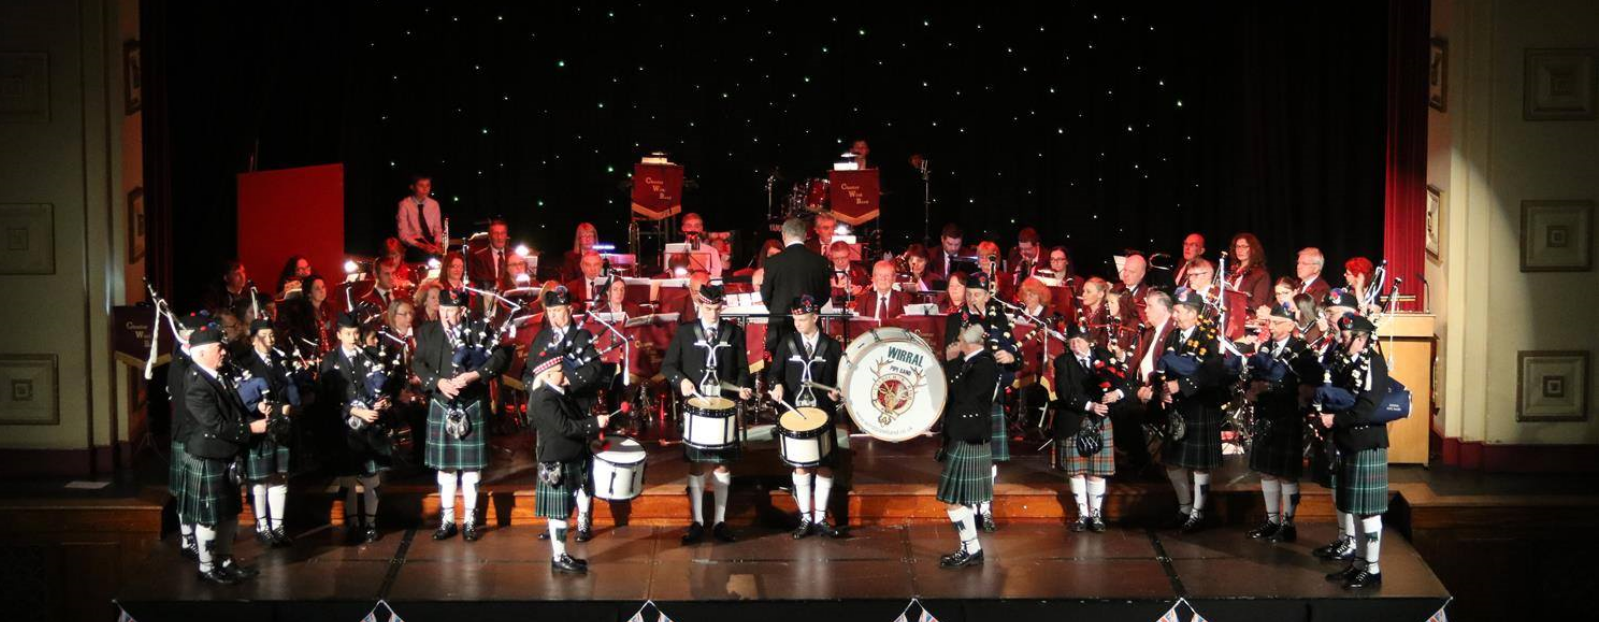 CWB and Wirral Pipe Band on Stage